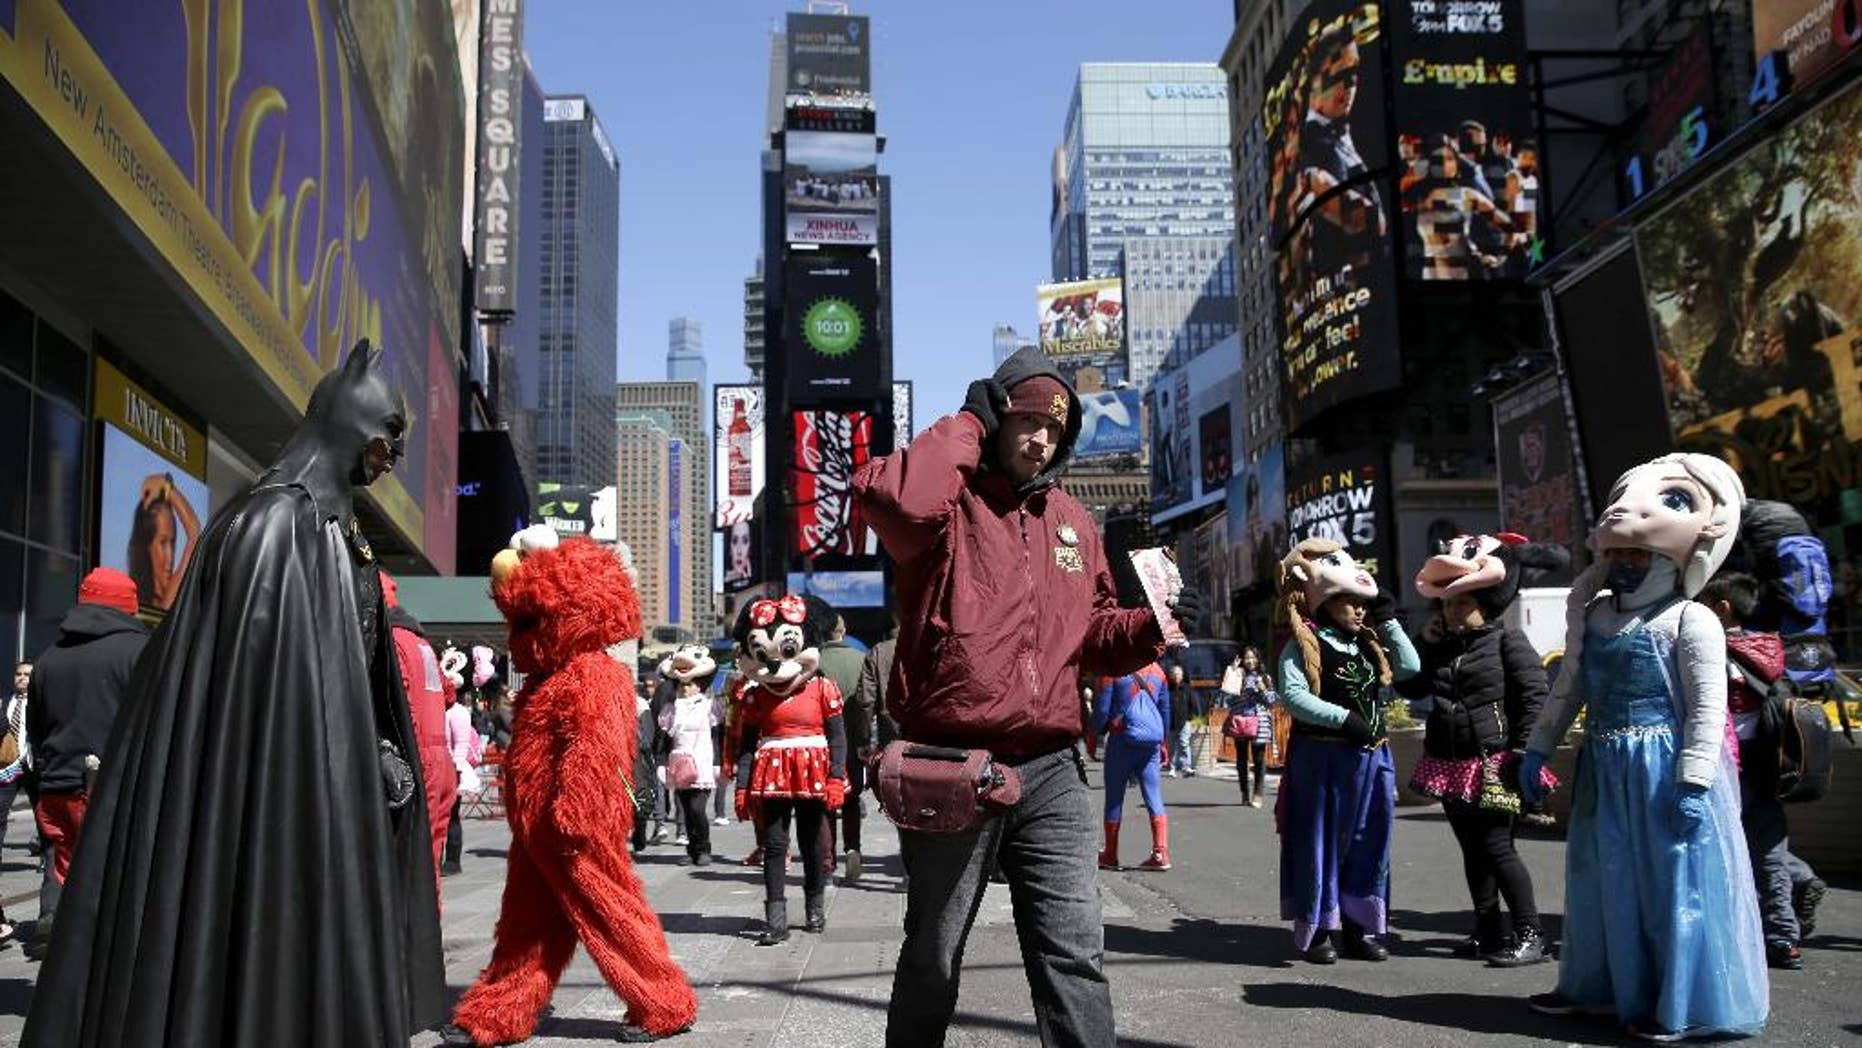 FILE - In this March 29, 2016 file photo, a bus tour ticket seller, center, walks through a group of costumed characters in Times Square in New York. New York City workers have started painting teal rectangles in pedestrian plazas designating where costumed characters can pose with tourists in Times Square. Starting June 21, street performers and costumed characters will be restricted to those areas when soliciting tips from tourists.  (AP Photo/Seth Wenig)